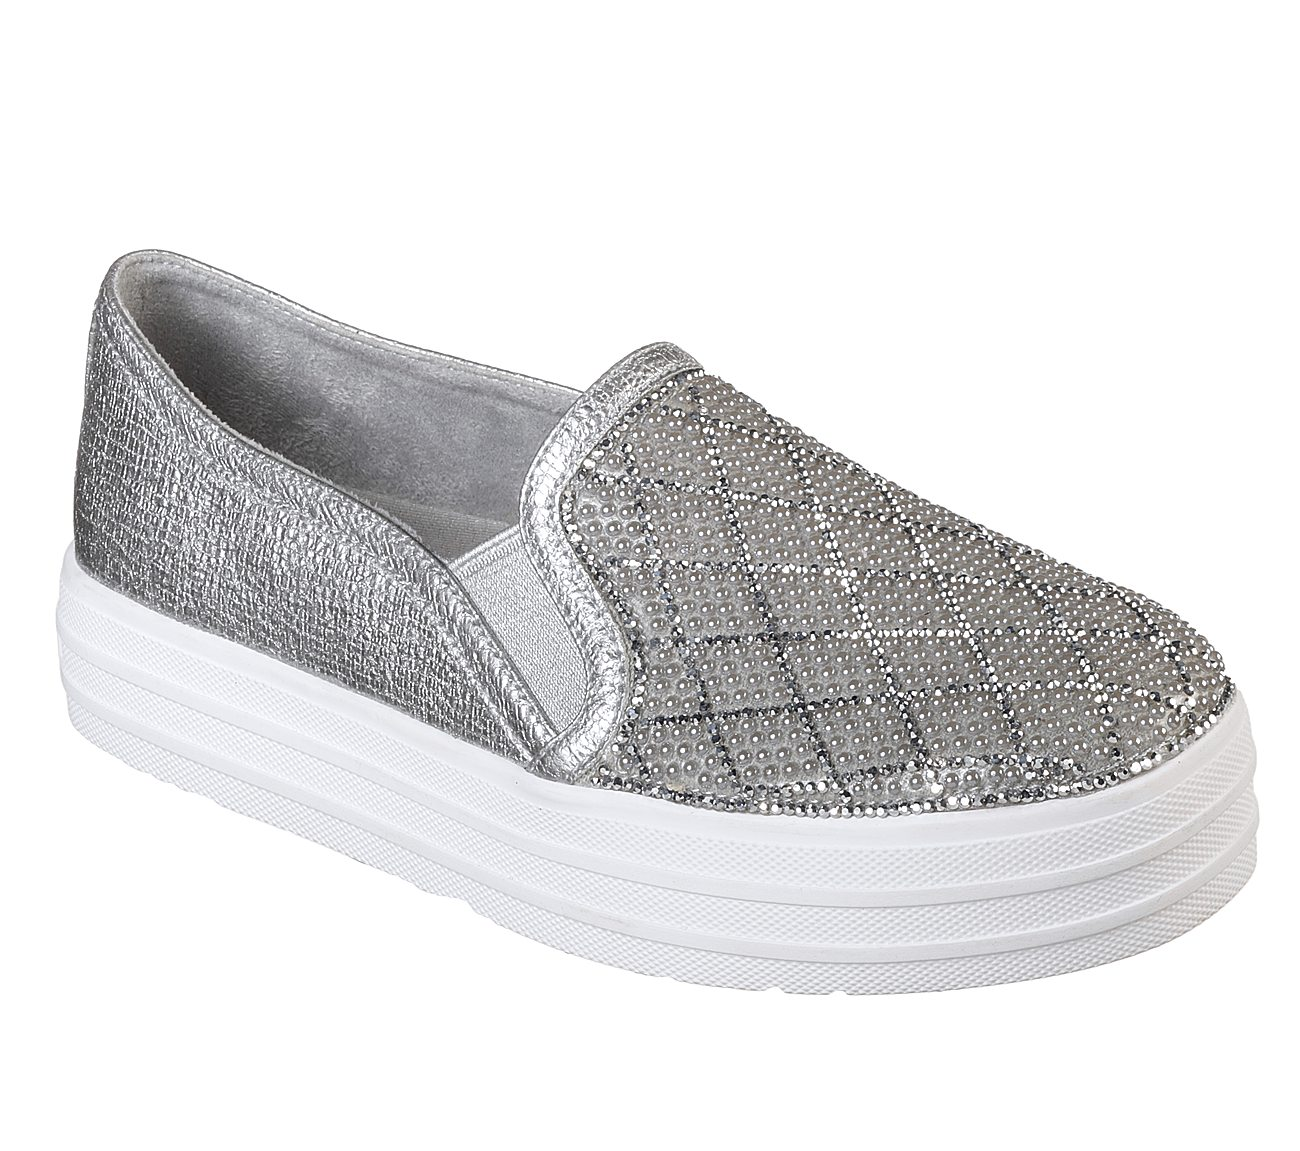 686823baf3ab Buy SKECHERS Double Up - Diamond Dancer Slip-On Sneakers Shoes only ...